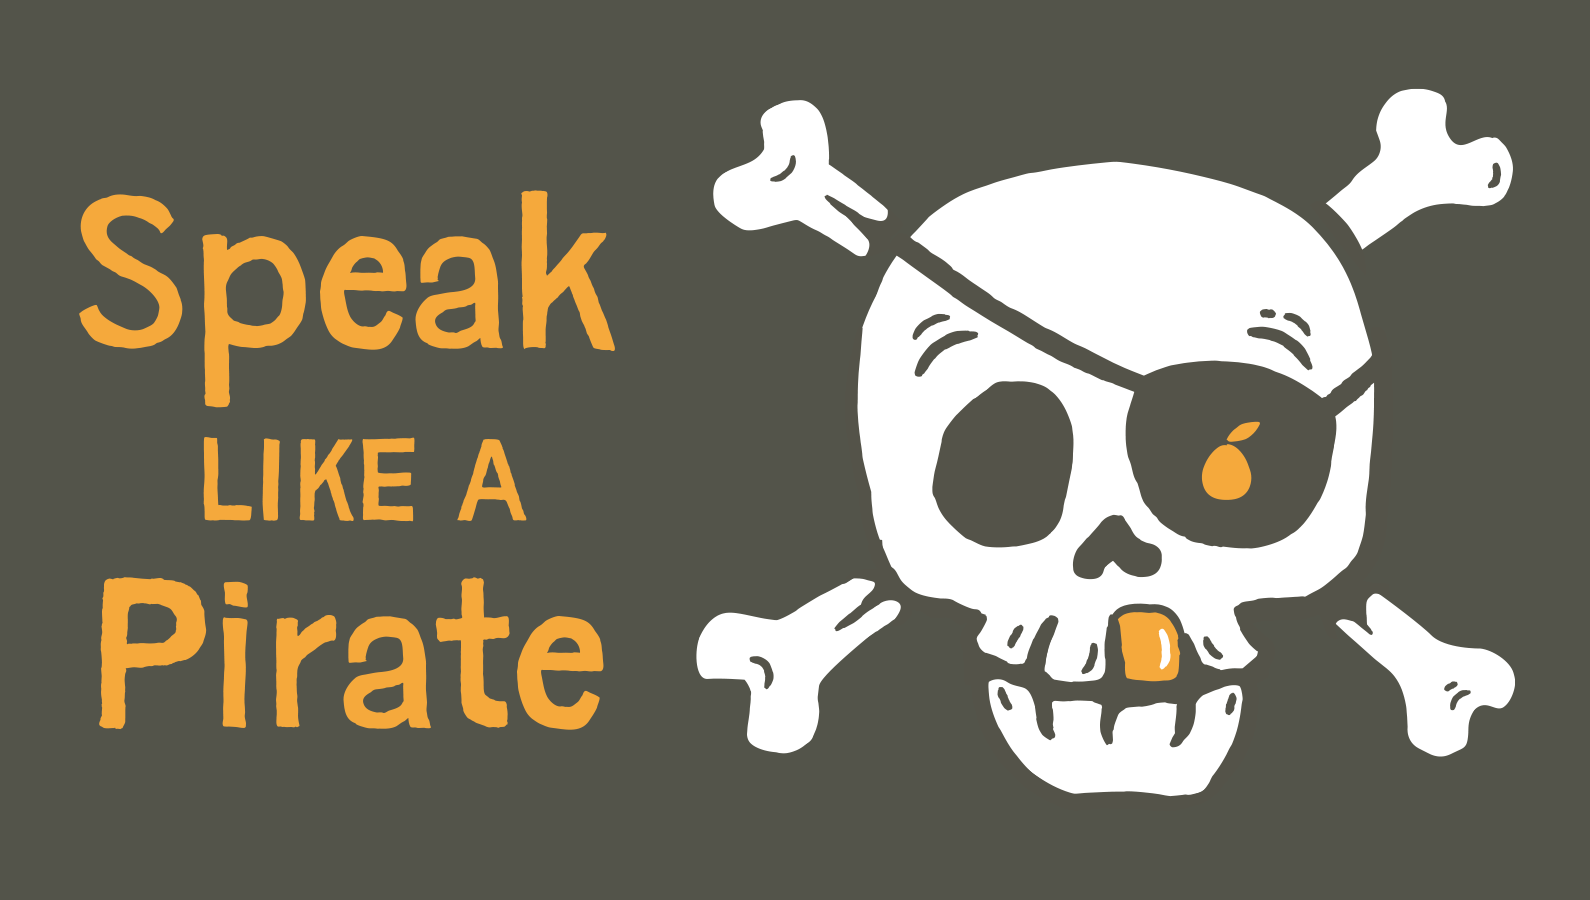 Speak like a pirate header